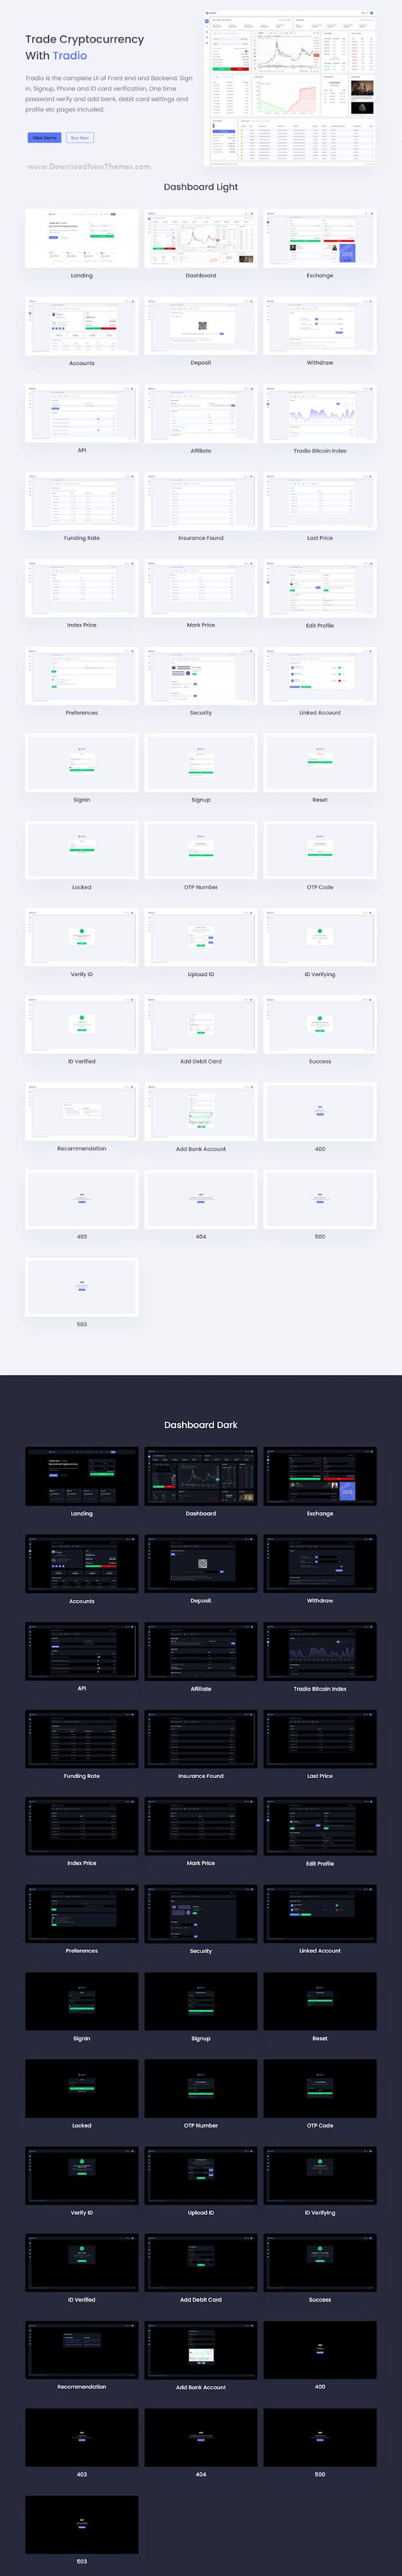 Tradio Cryptocurrency Exchange Vue App Dashboard Template